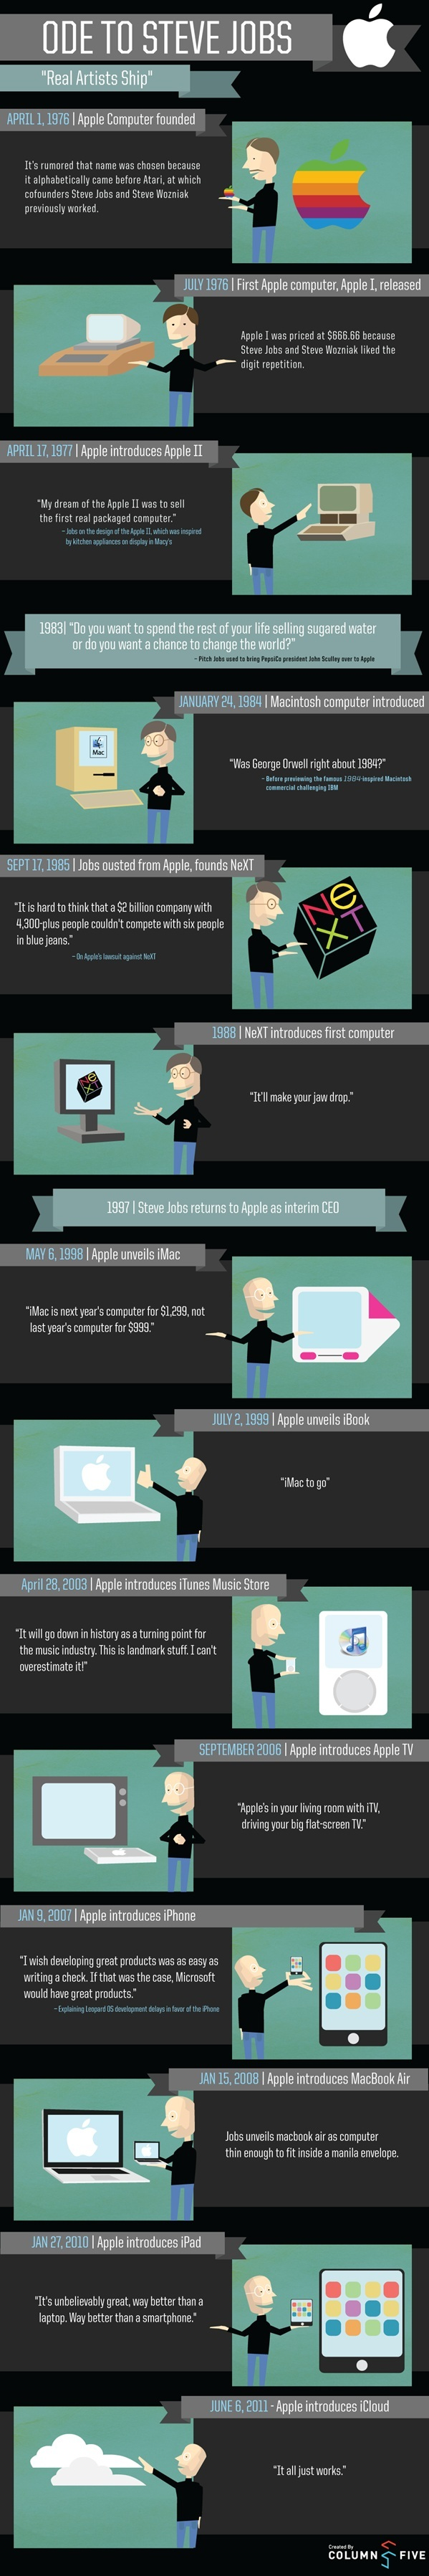 Steve Jobs' Greatest Accomplishments [INFOGRAPHIC]